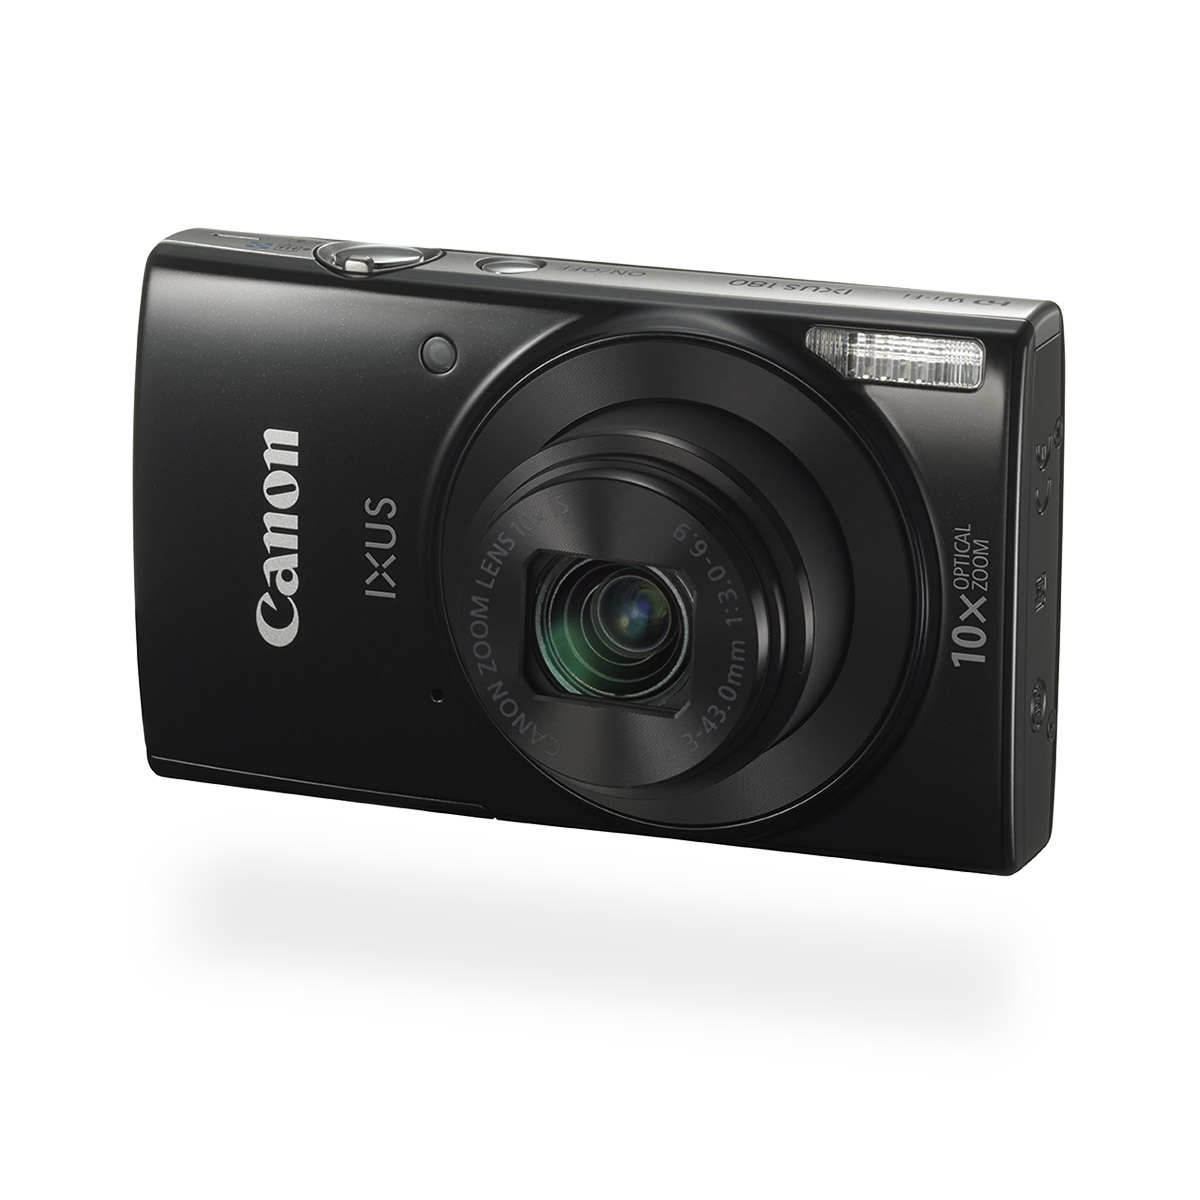 Canon IXUS 180 digital compact camera black front angled